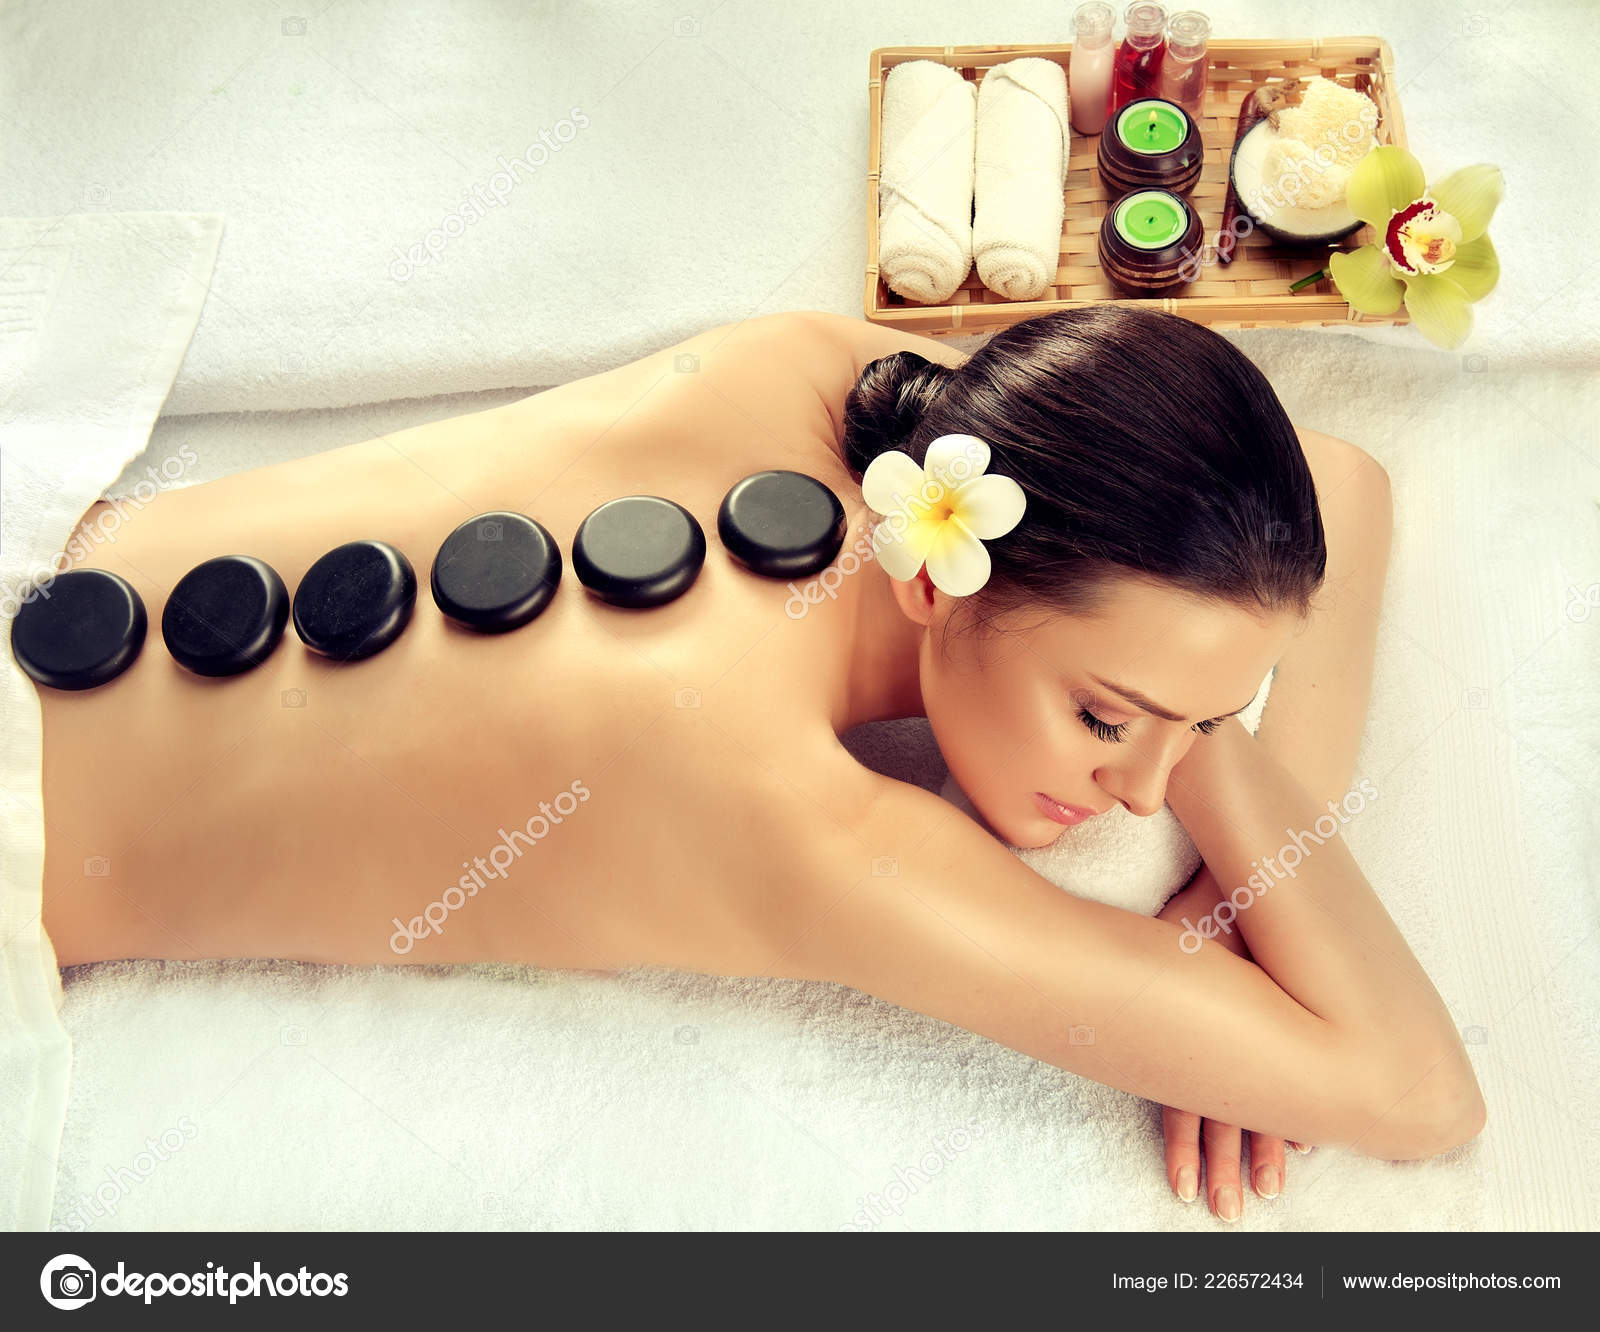 Photos Relaxation Spa Beautiful Woman Relaxing Spa Salon Hot Stones Body Massage Stock Photo C Sofia Zhuravets 226572434